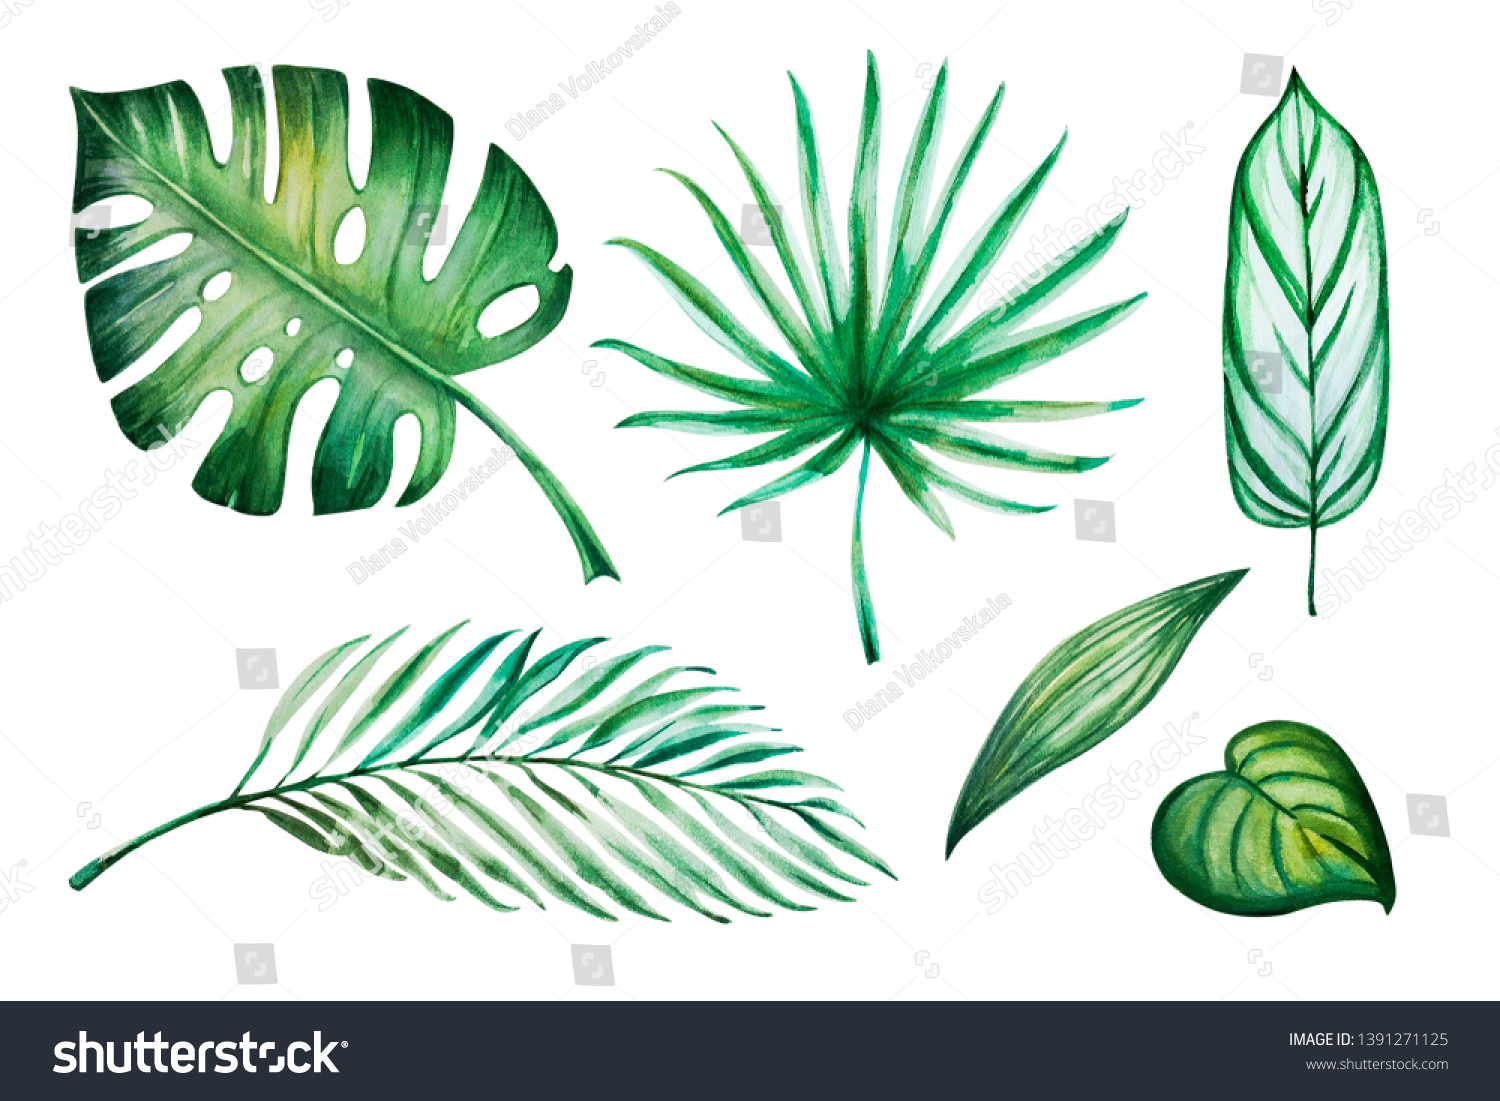 Beautiful Set Tropical Leaves Monstera Palm Stock Illustration 1391271125 Tropical flowers and leaves seamless pattern. https www shutterstock com image illustration beautiful set tropical leaves monstera palm 1391271125